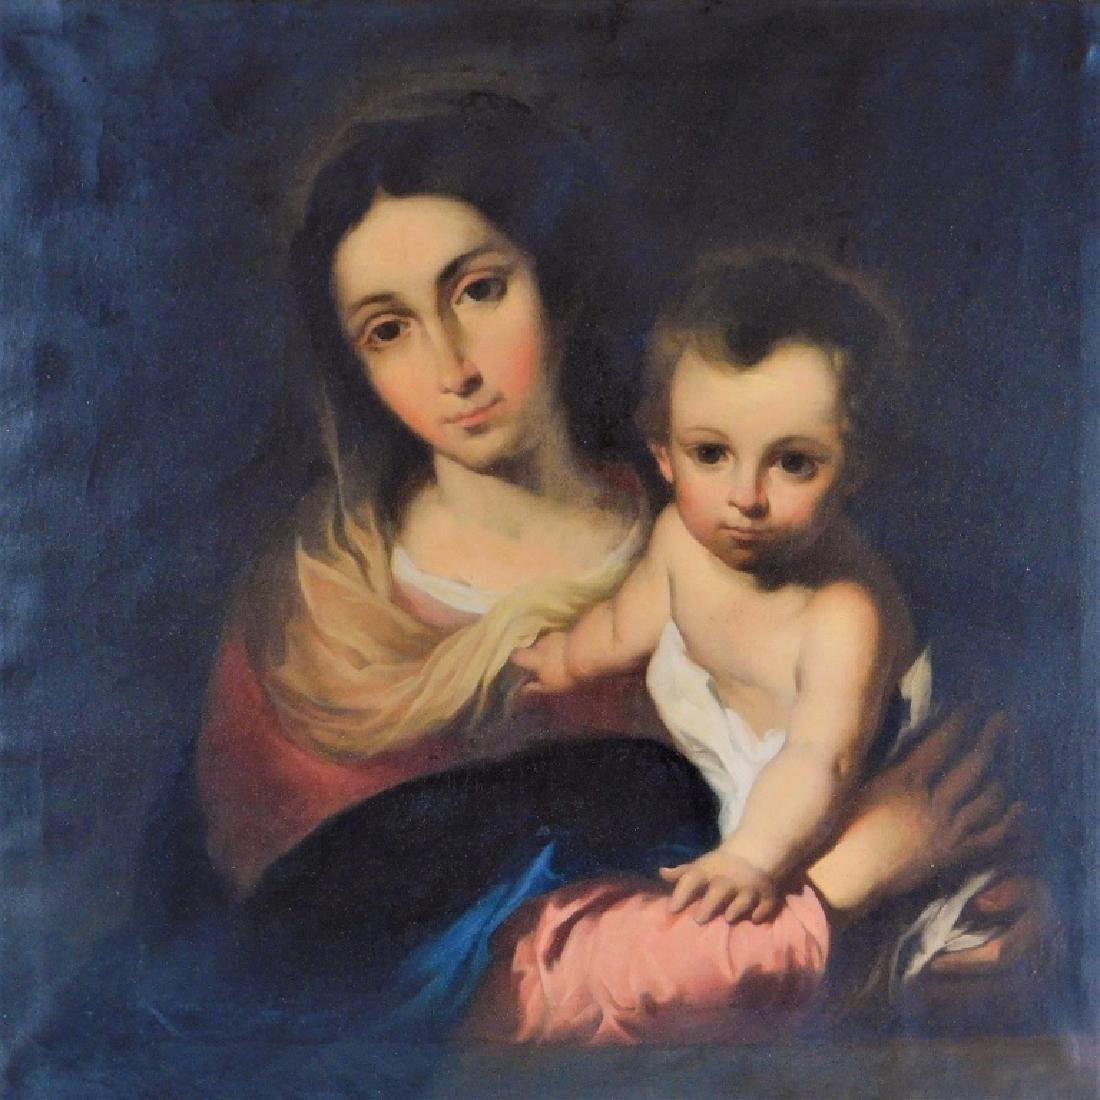 FINE European Old Master Madonna & Child Painting